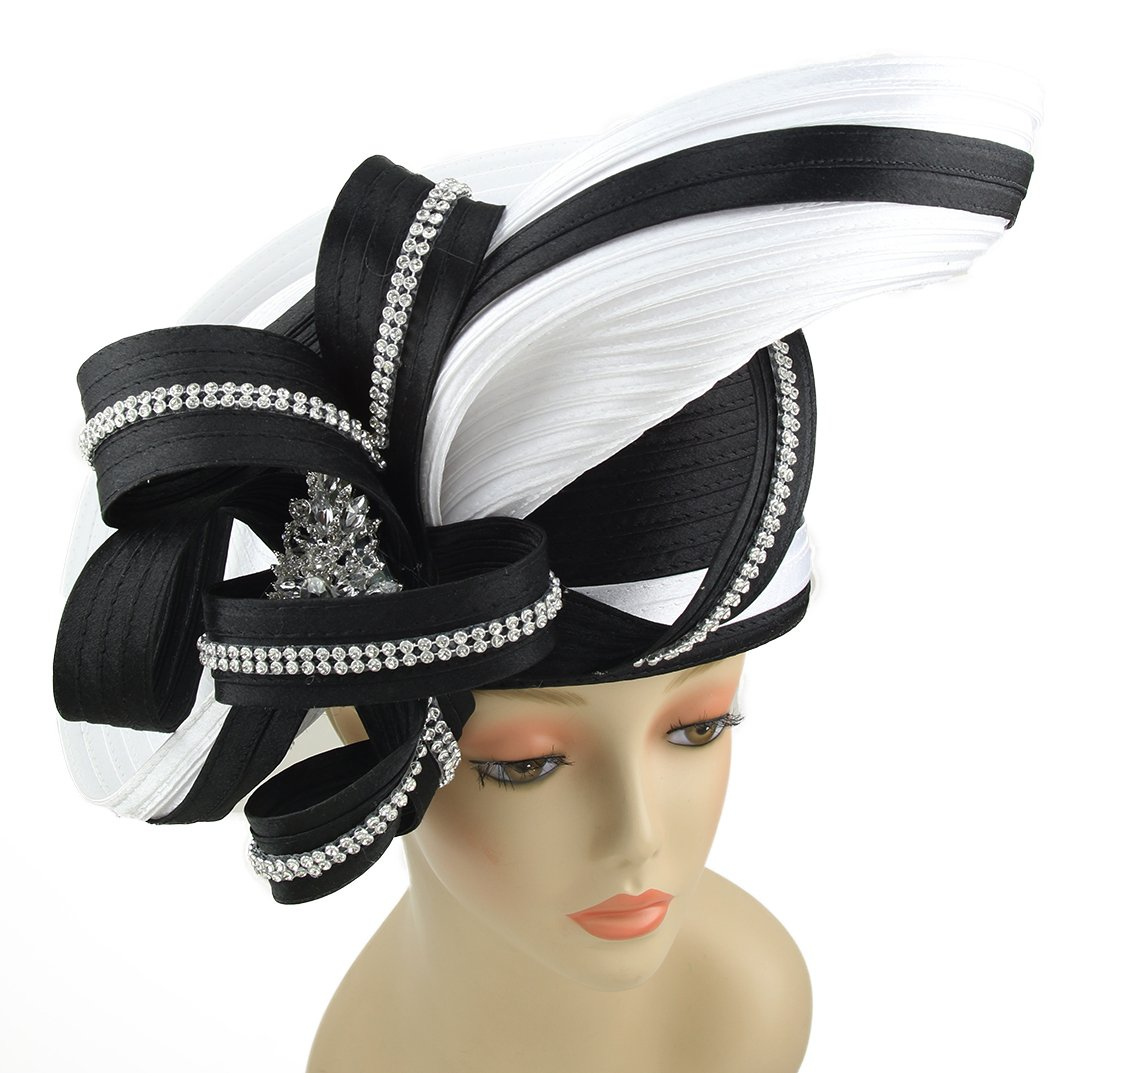 Jane's Hat Janes Women Hat Church Hats Wedding Tea Party Formal Hats (Black White)